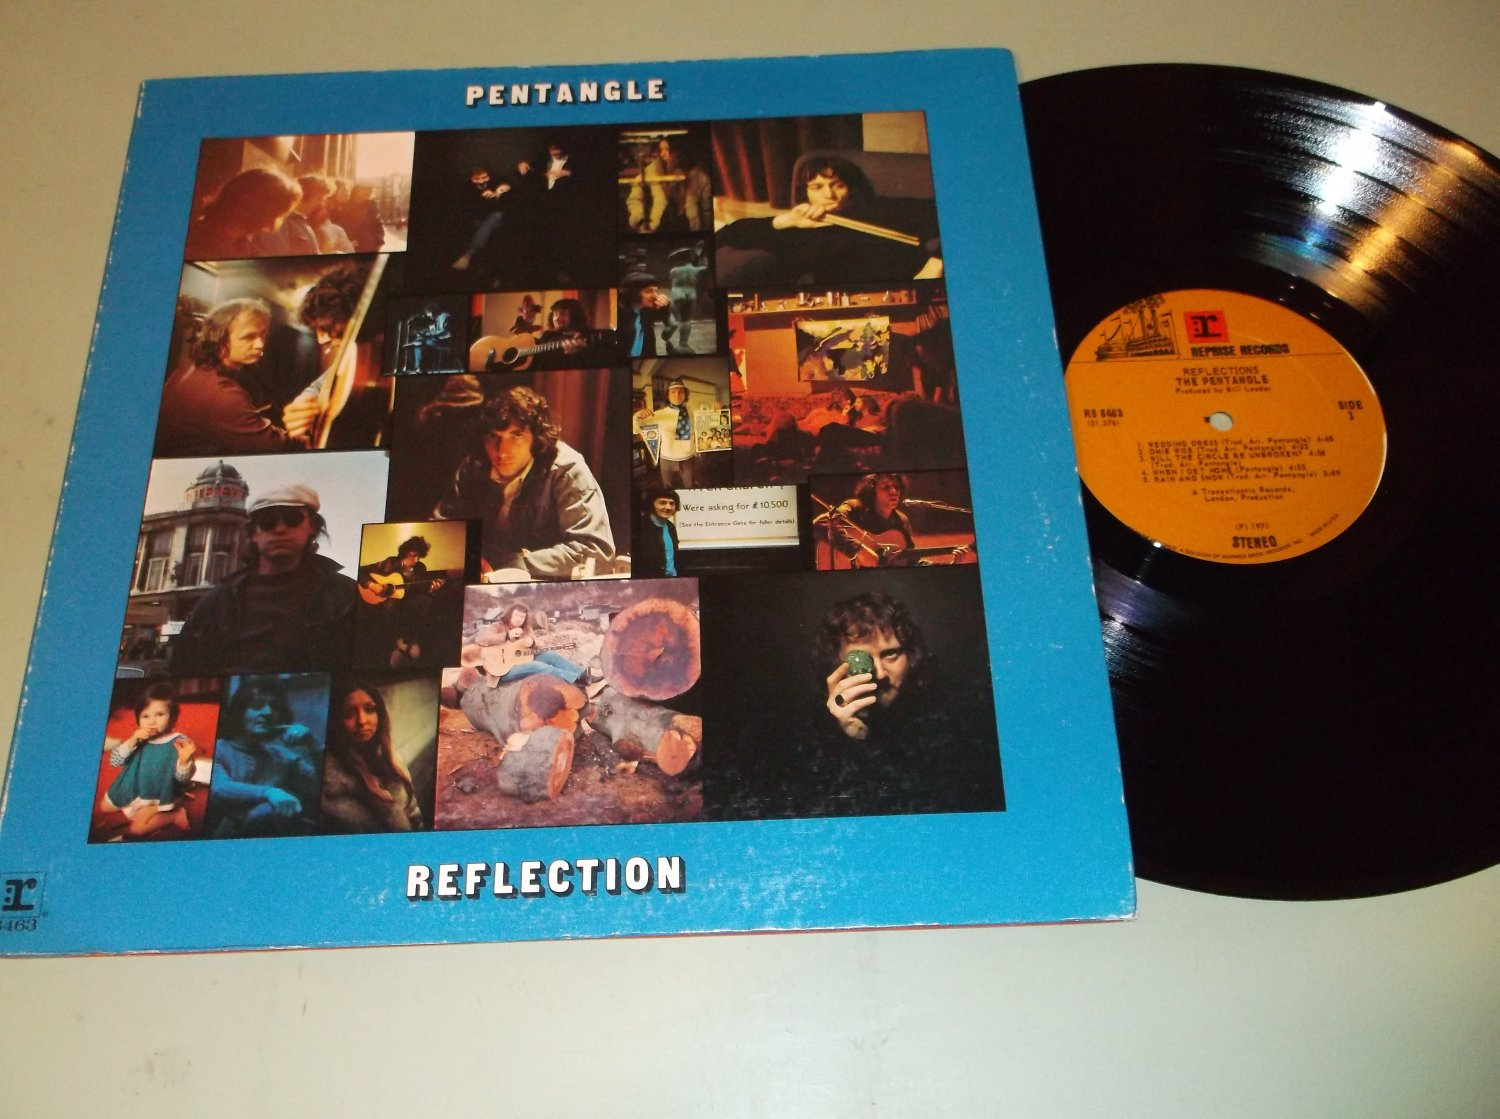 Pentangle - Reflection - REPRISE 6463 - Folk Rock  LP